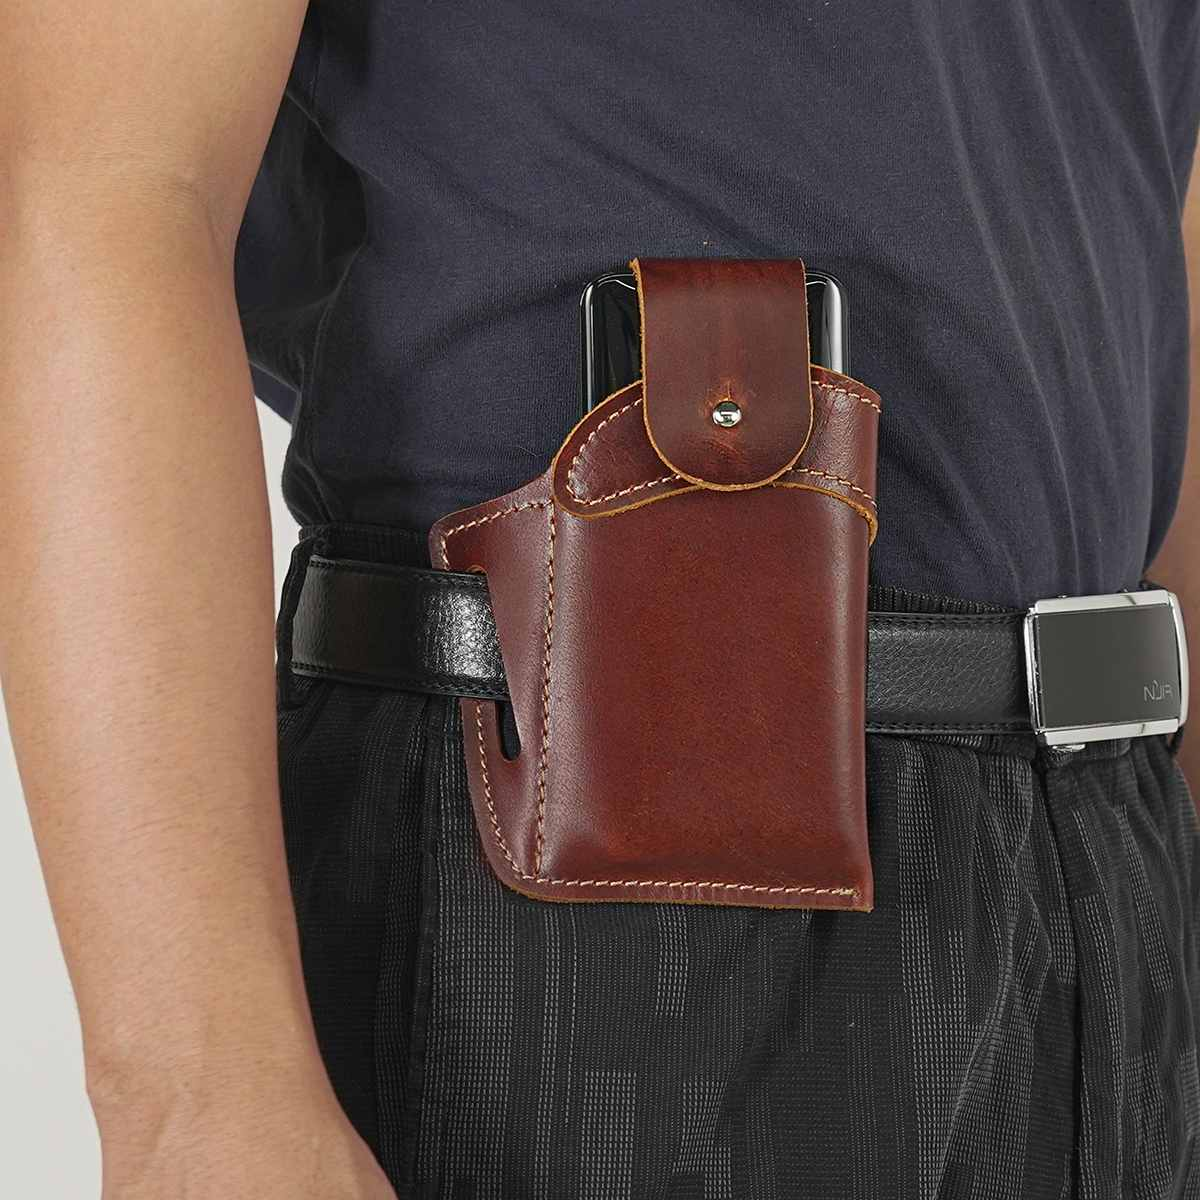 hunting axe hatchet head cover ax blade sheath belt loop holster thick genuine leather coffee color New Retro Men's Cellphone Loop Holster Case Belt Waist Bag Props Multi-function Genuine Leather Purse Buckle Phone Wallet Gift